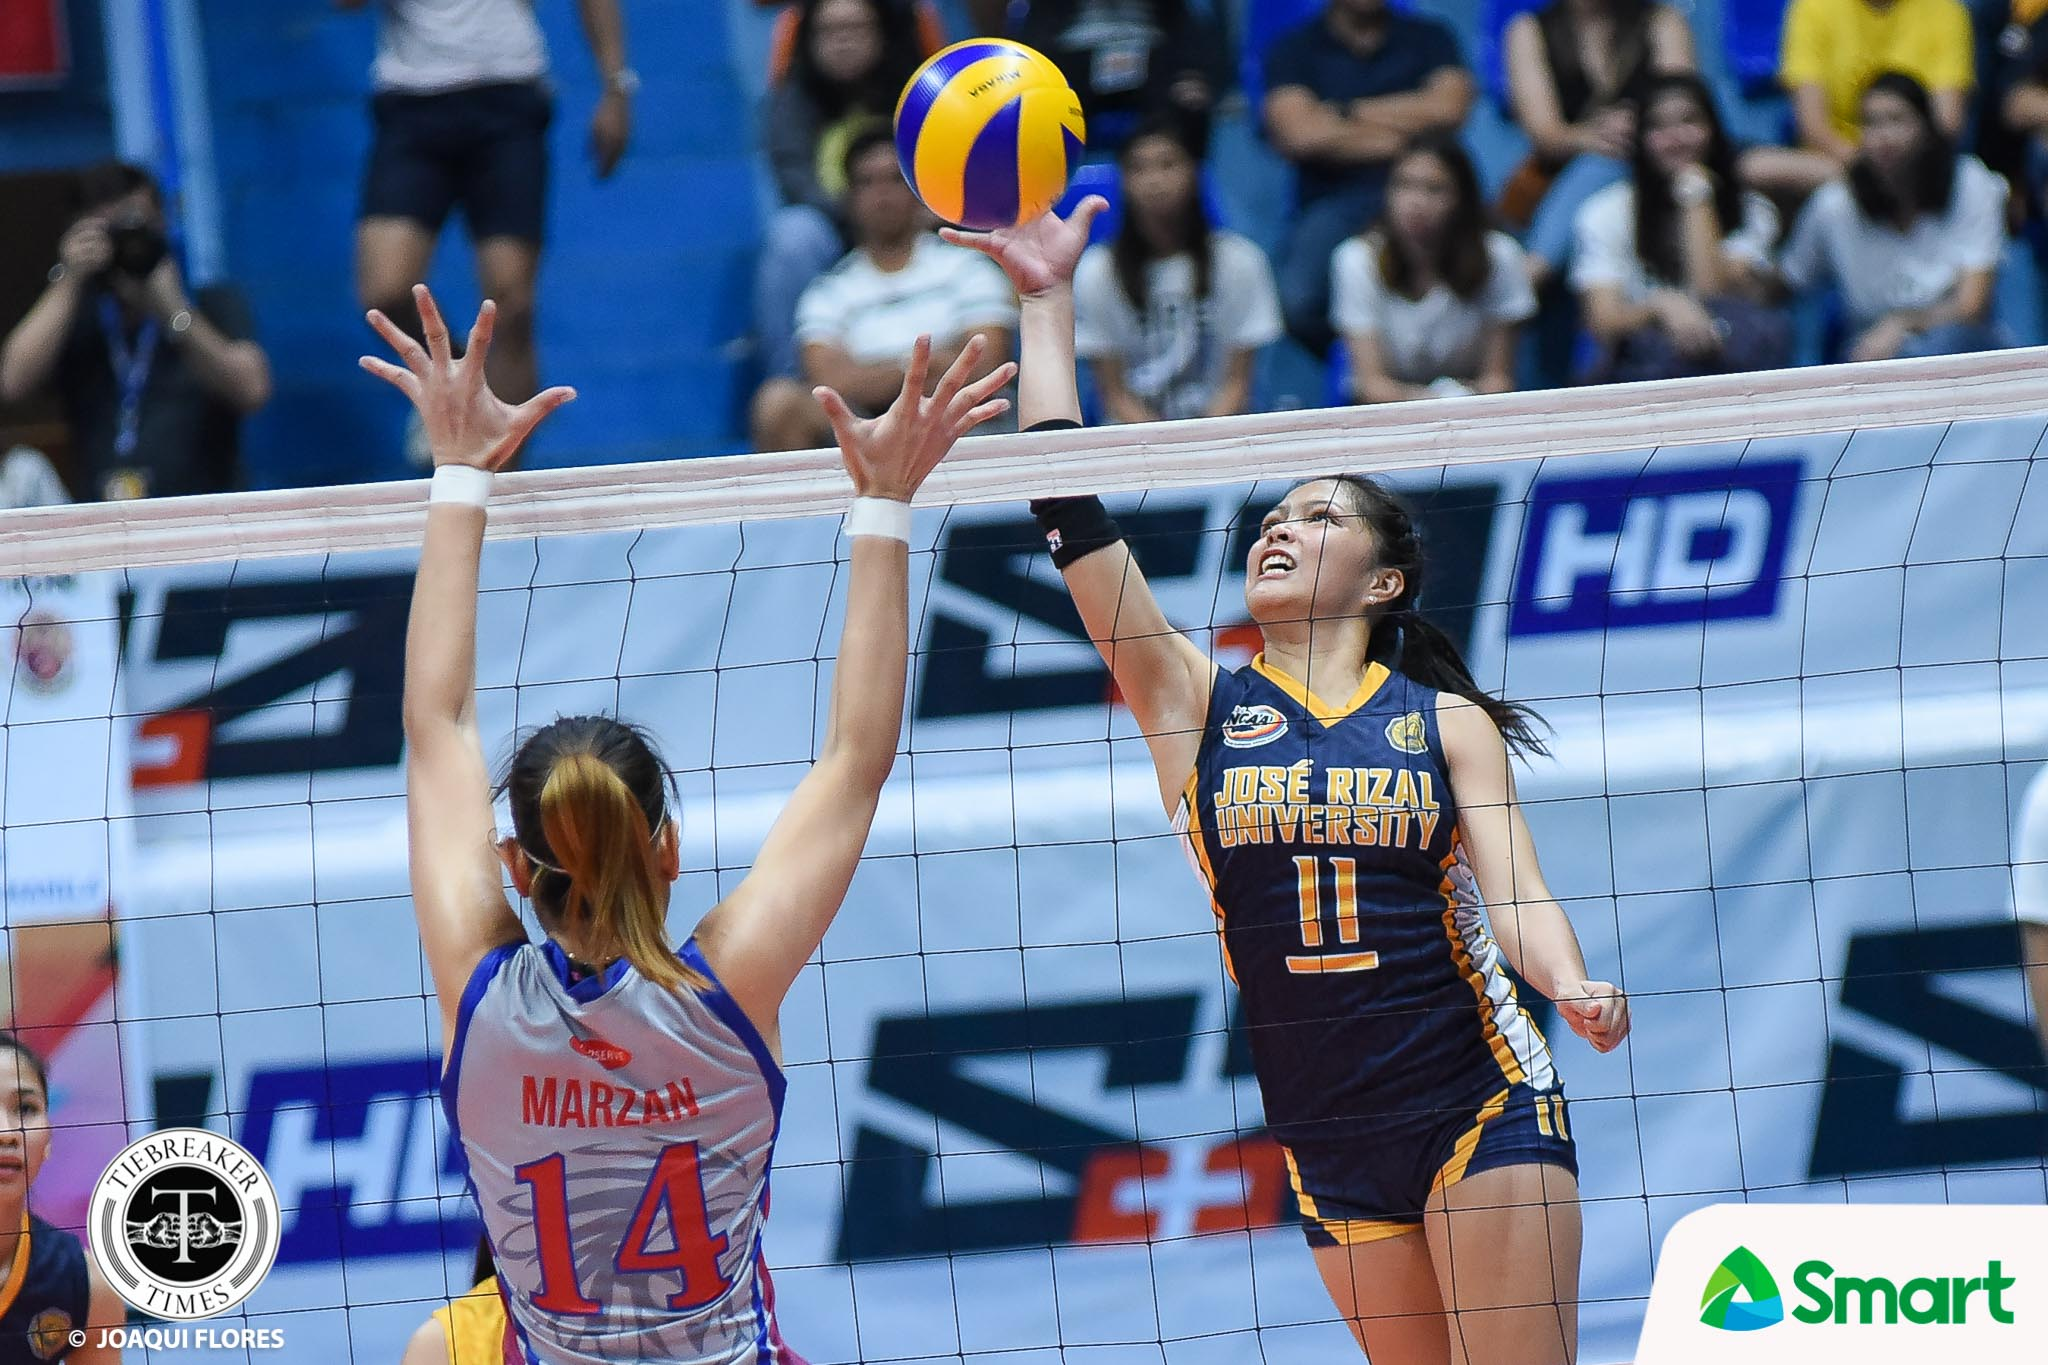 Philippine Sports News - Tiebreaker Times Shola Alvarez leaves lasting mark on JRU, sets sight on beach volley JRU NCAA News Volleyball  Shola Alvarez NCAA Season 93 Women's Volleyball NCAA Season 93 Mia Tioseco JRU Women's Volleyball